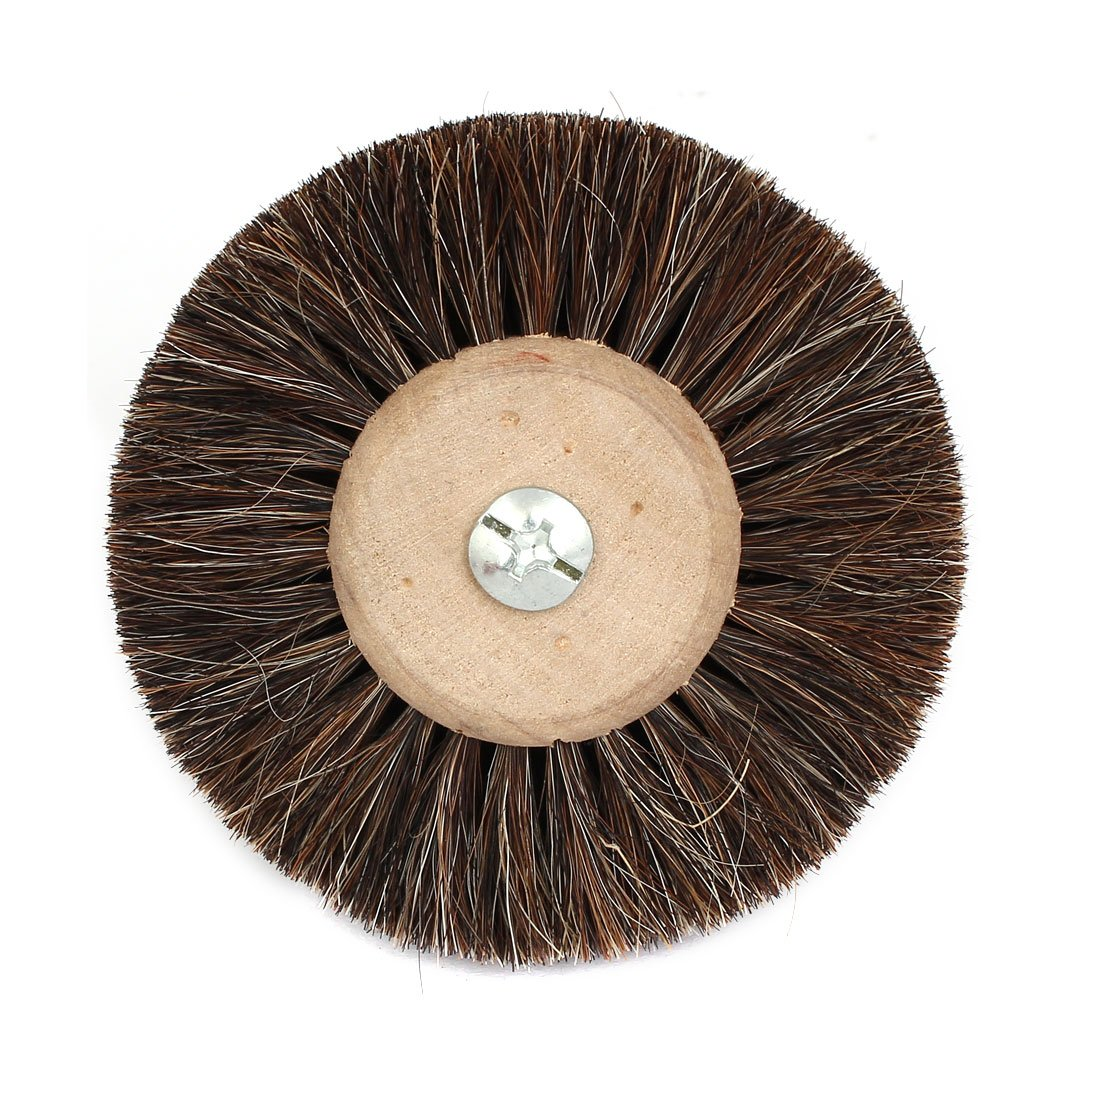 uxcell 80mm Dia 3mm Shank Wooden Hub Horse Imitated Hair Wheel Brush Jewelry Polishing Tool 2pcs a17030200ux0107